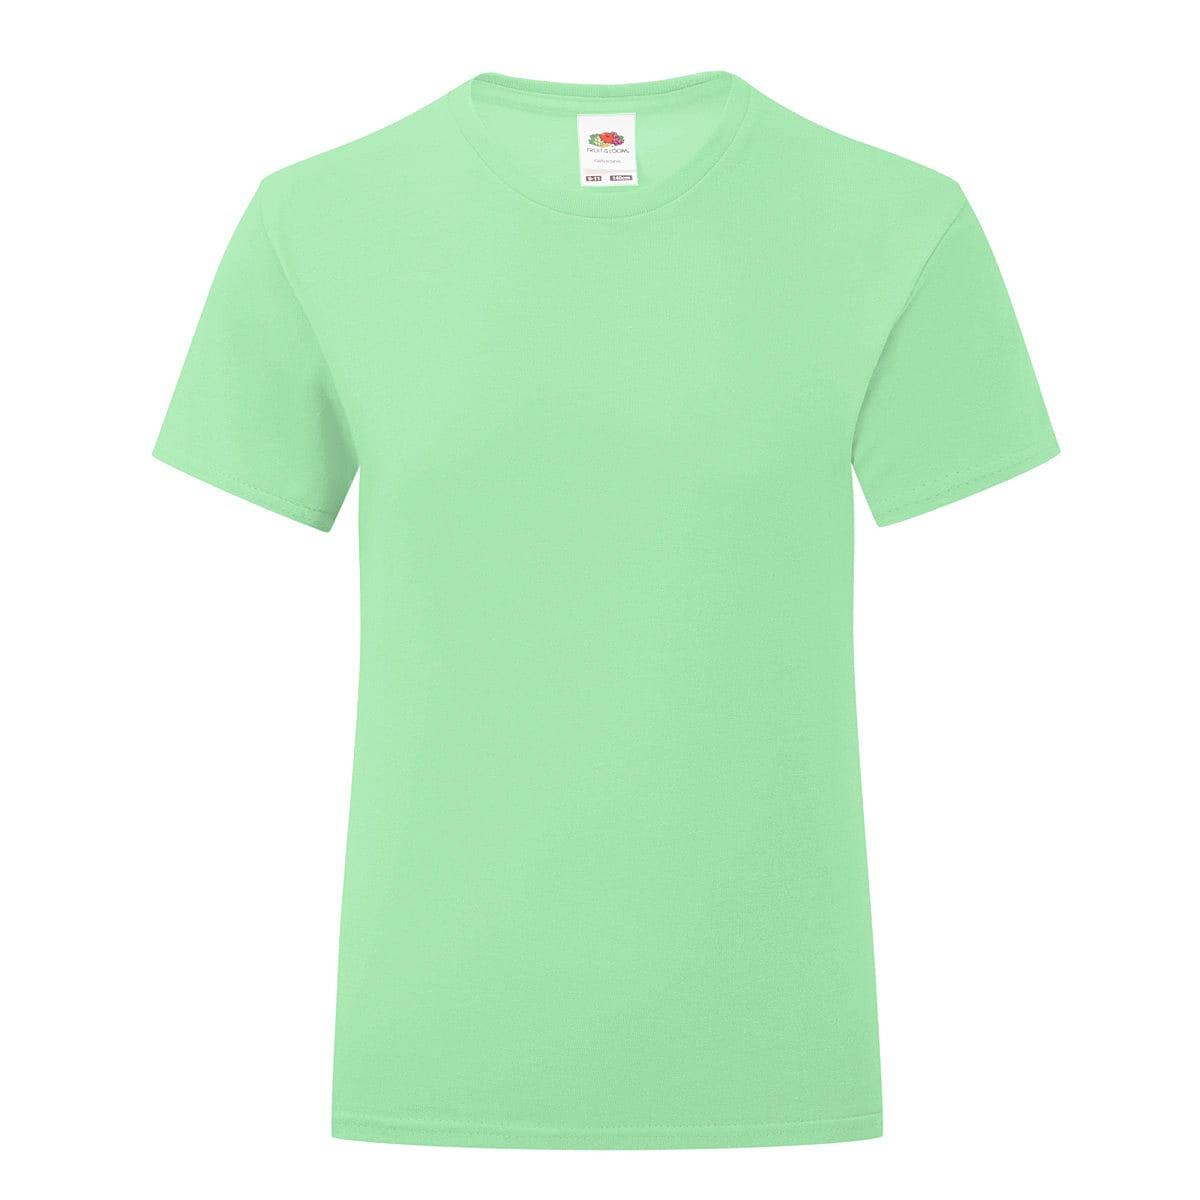 Fruit Of The Loom Girls Iconic T-Shirt in Neo Mint (Product Code: 61025)